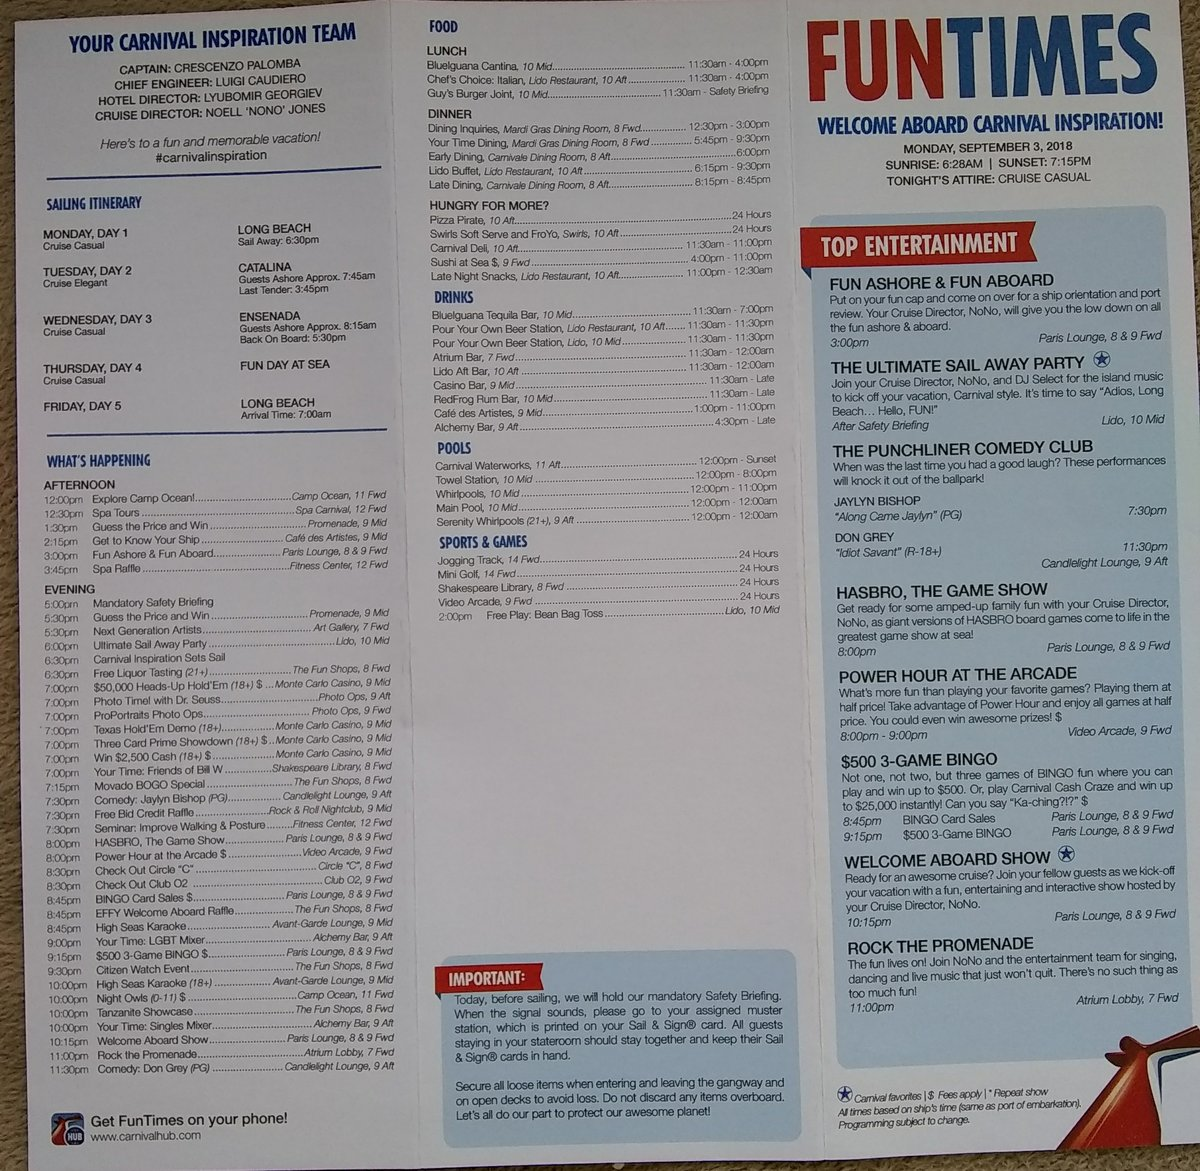 Carnival Inspiration Fun Times Daily Schedule Carnival Cruise Lines Cruise Critic Community